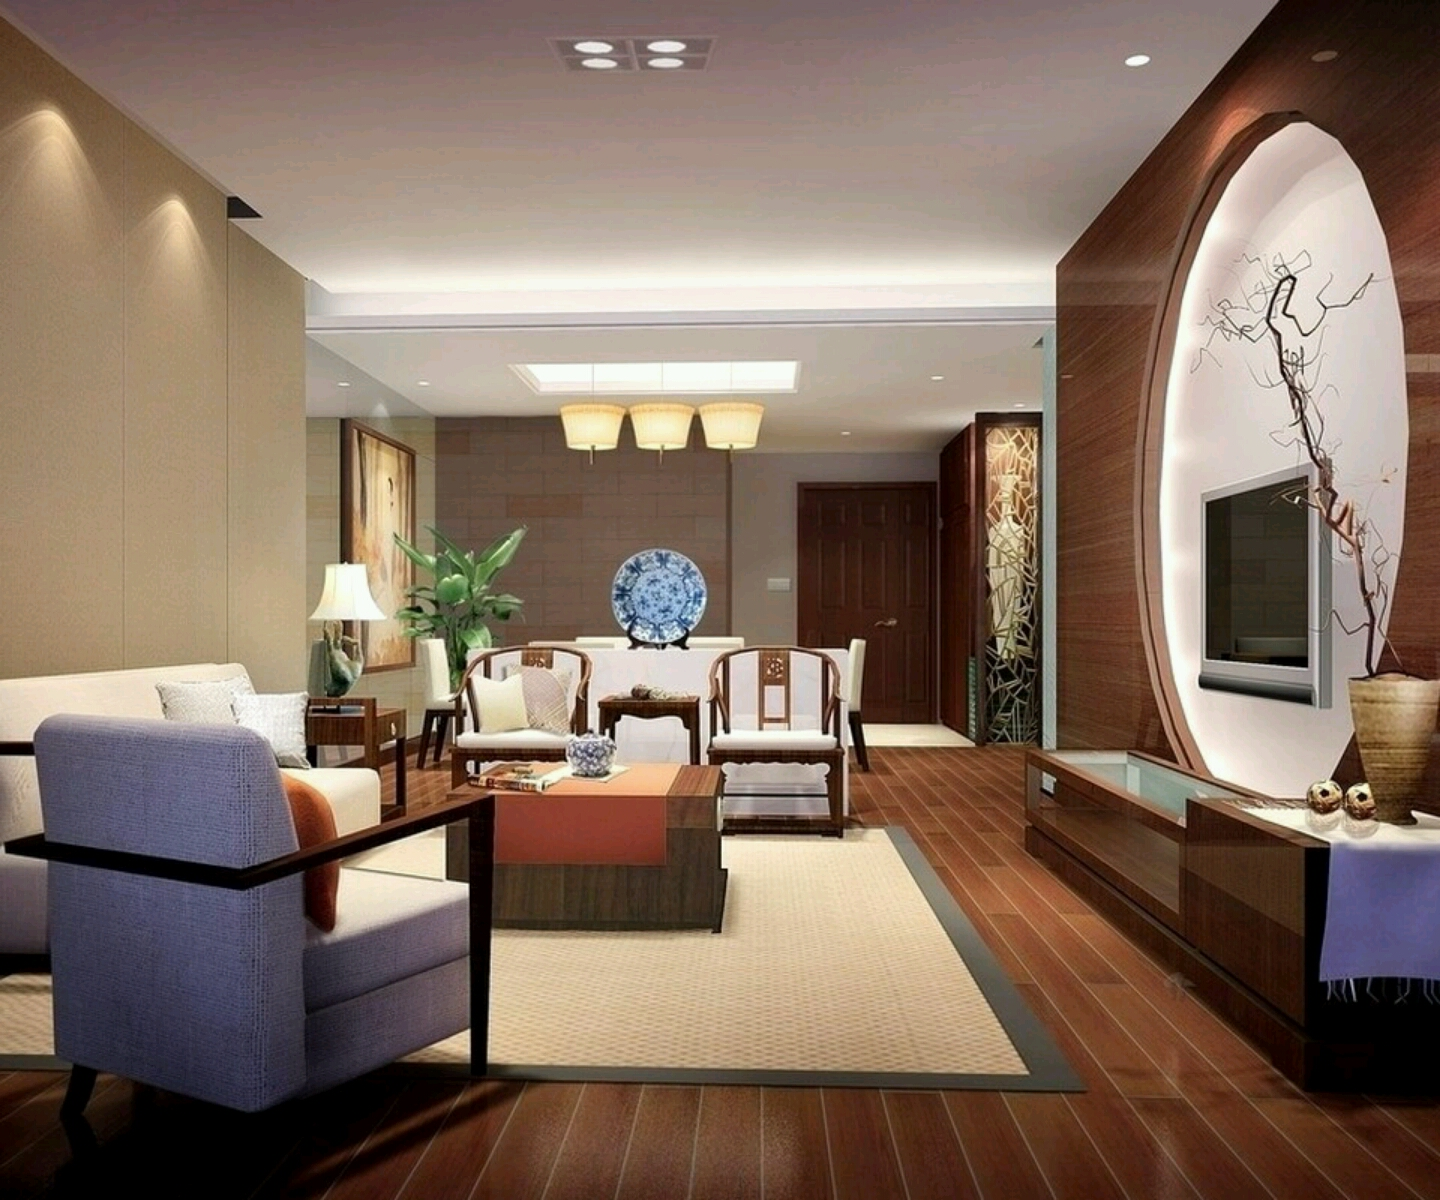 Luxury homes interior decoration living room designs ideas for Interior design ideas white living room